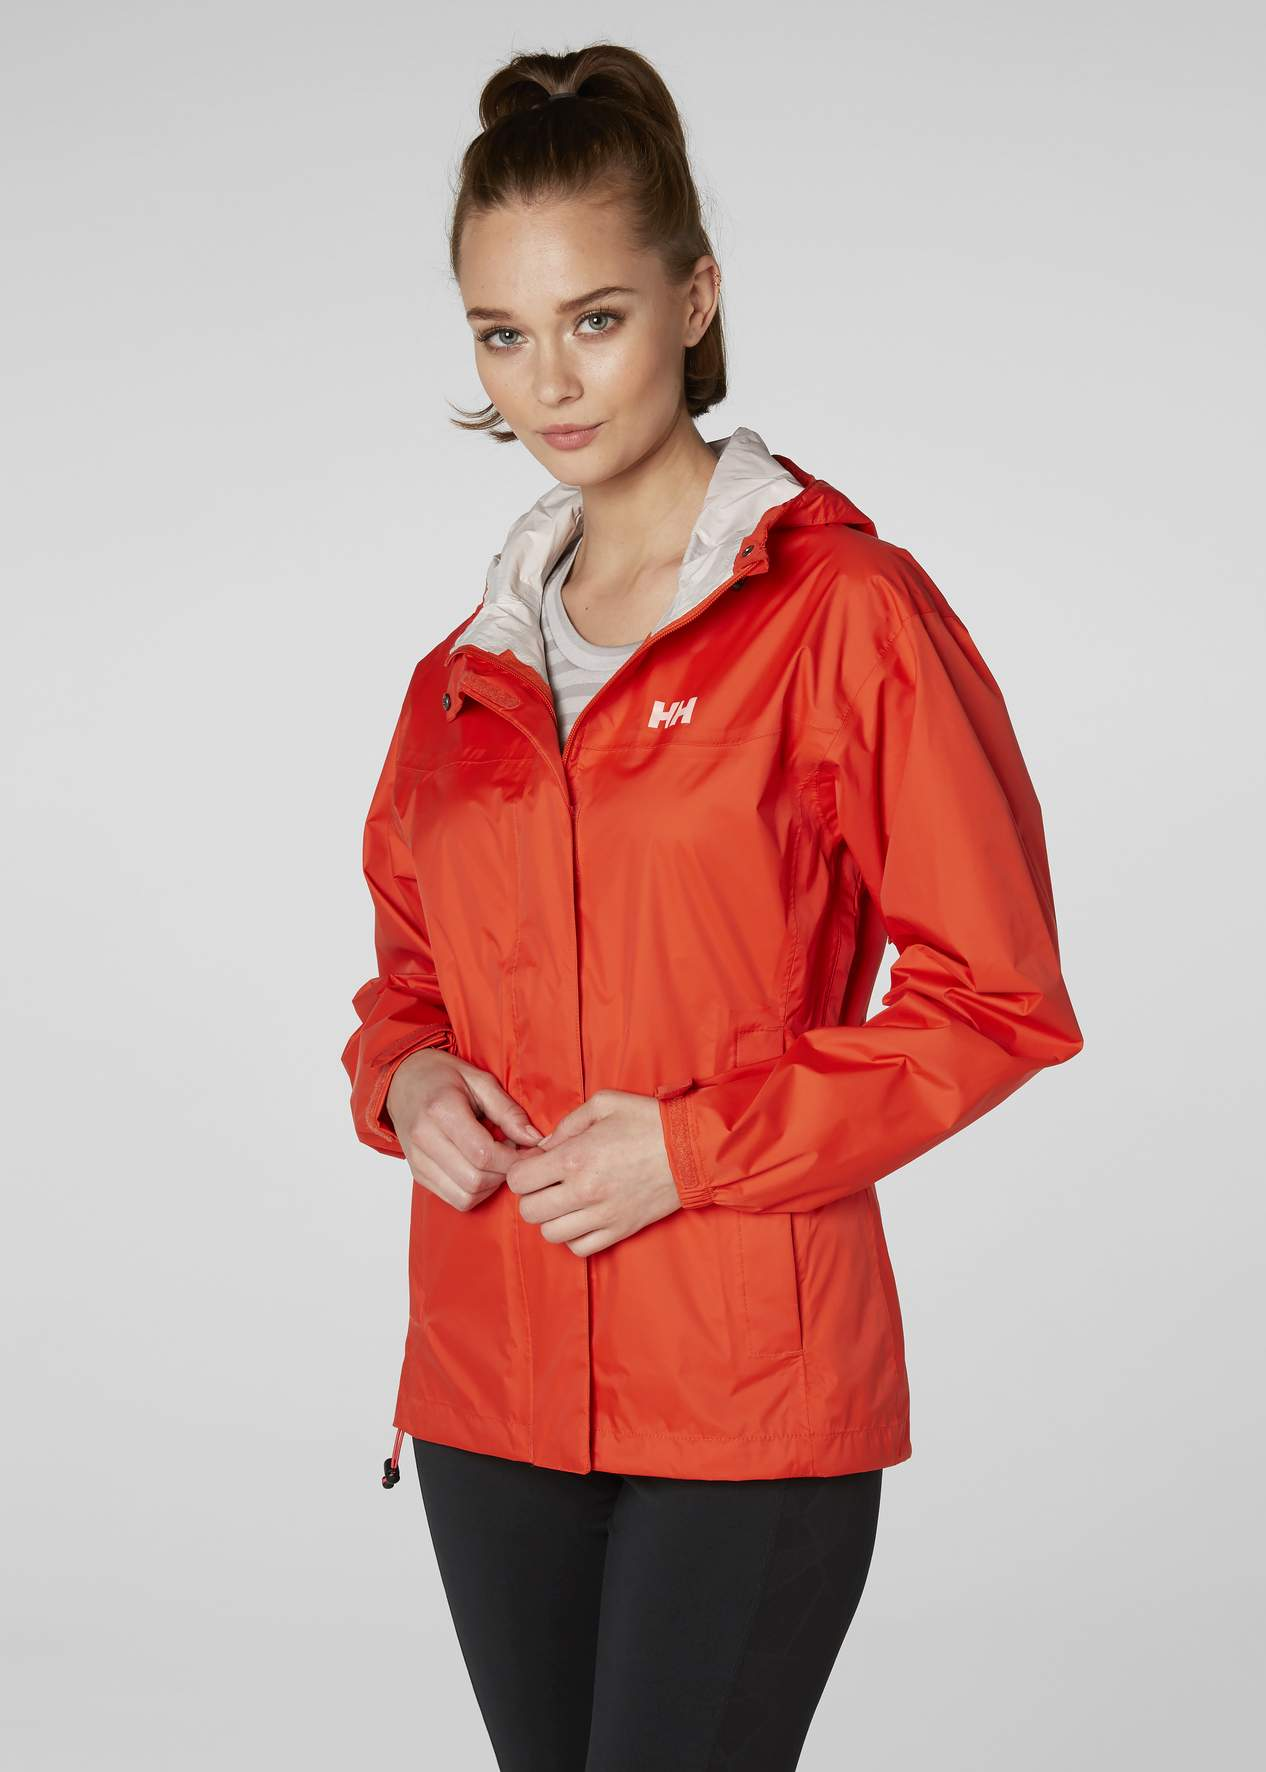 9e423925c06 Women s Helly Hansen LOKE JACKET-Grenadine - Sklep internetowy ...